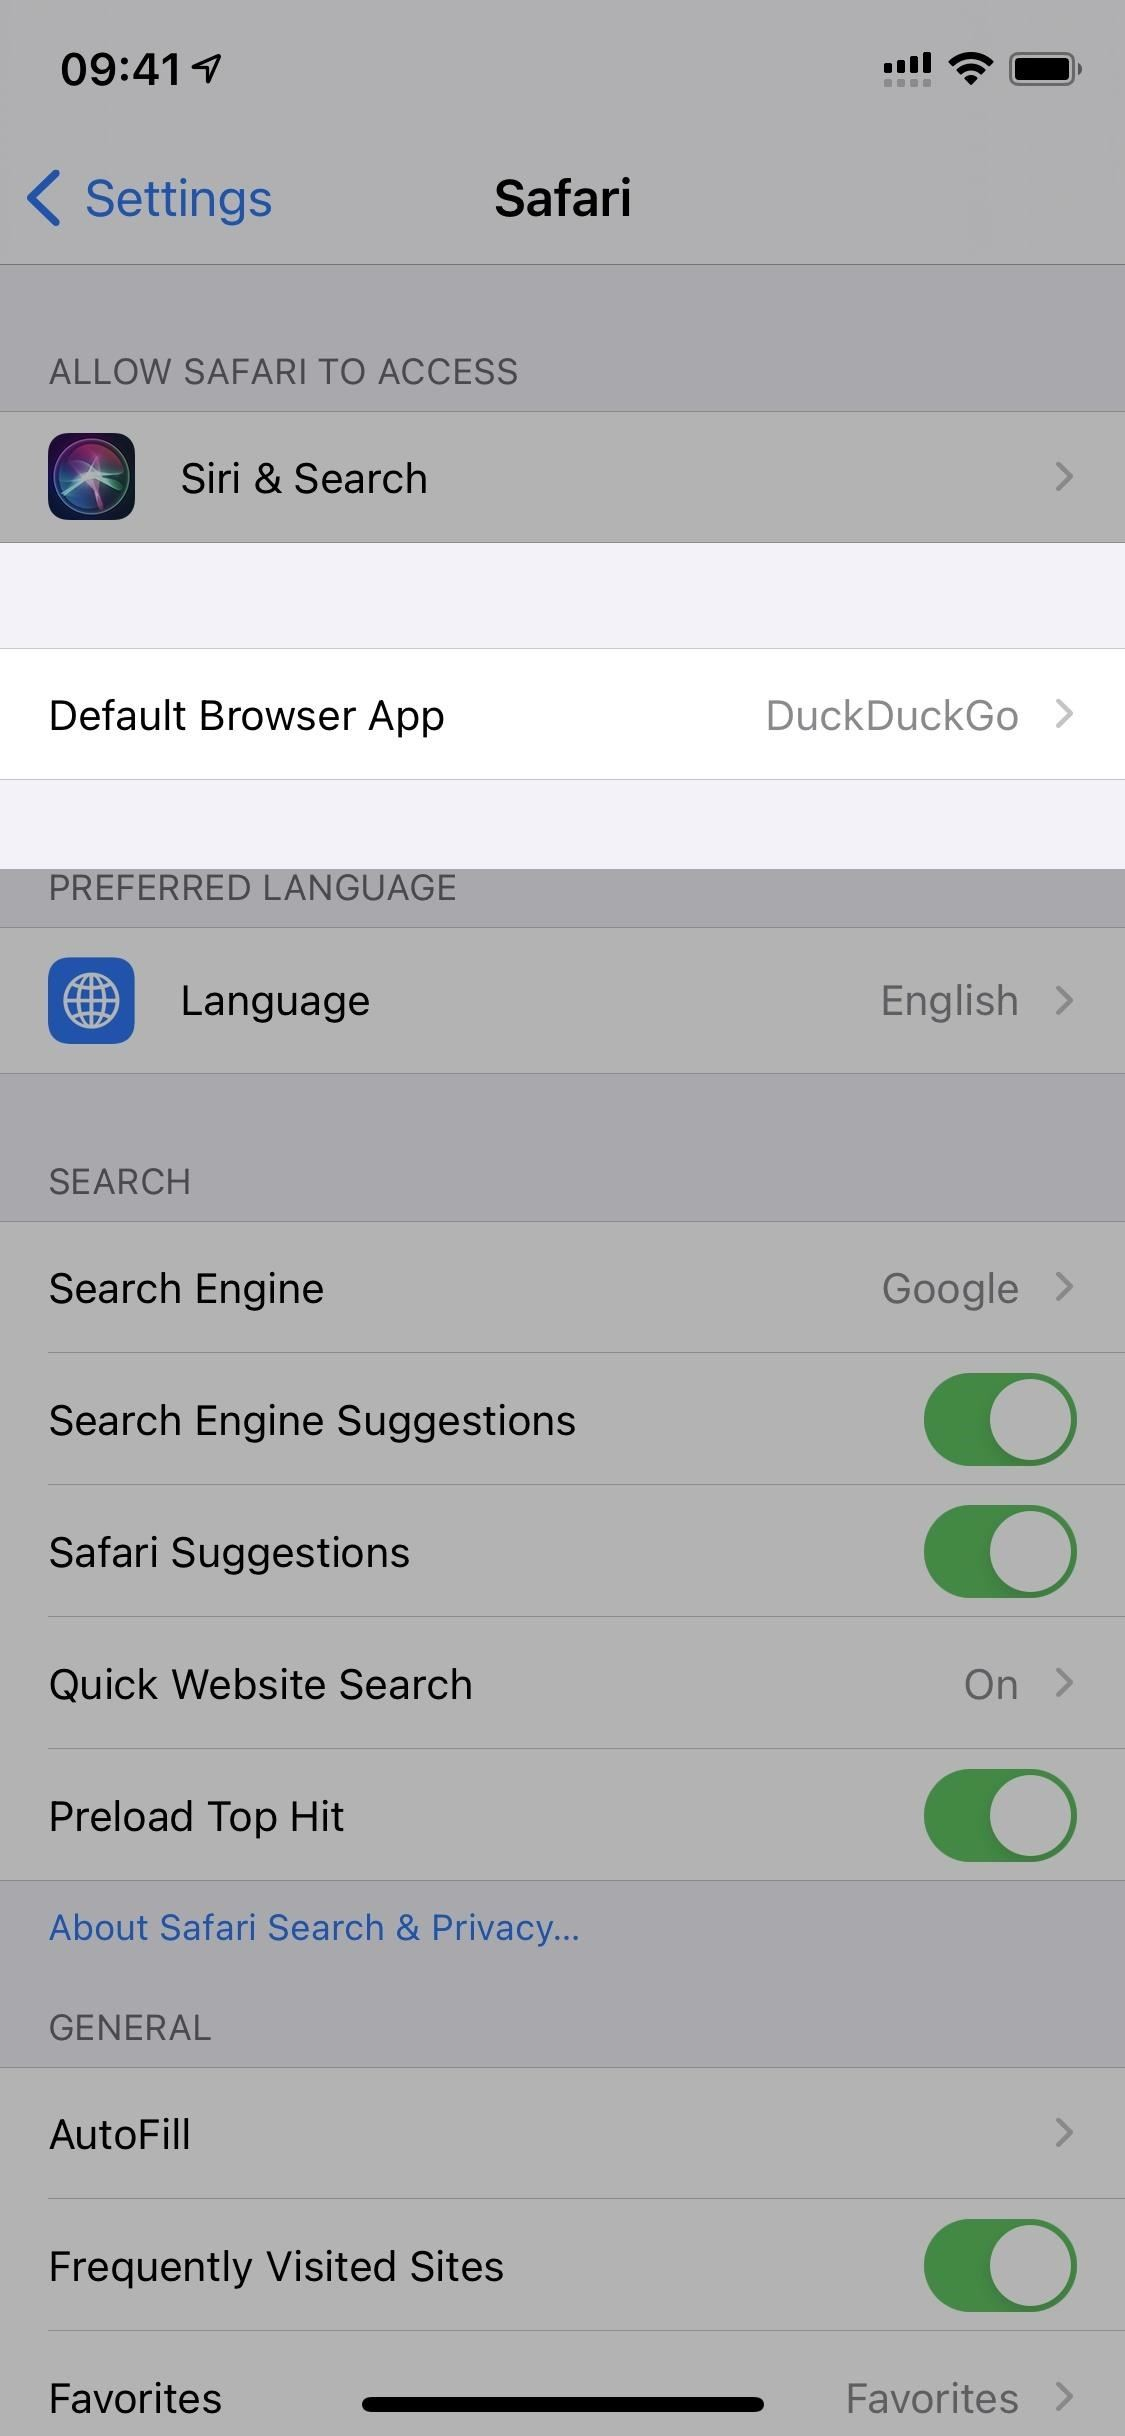 How to Change Your Default Browser in iOS 14 from Safari to Chrome, Firefox, Edge, or Another App